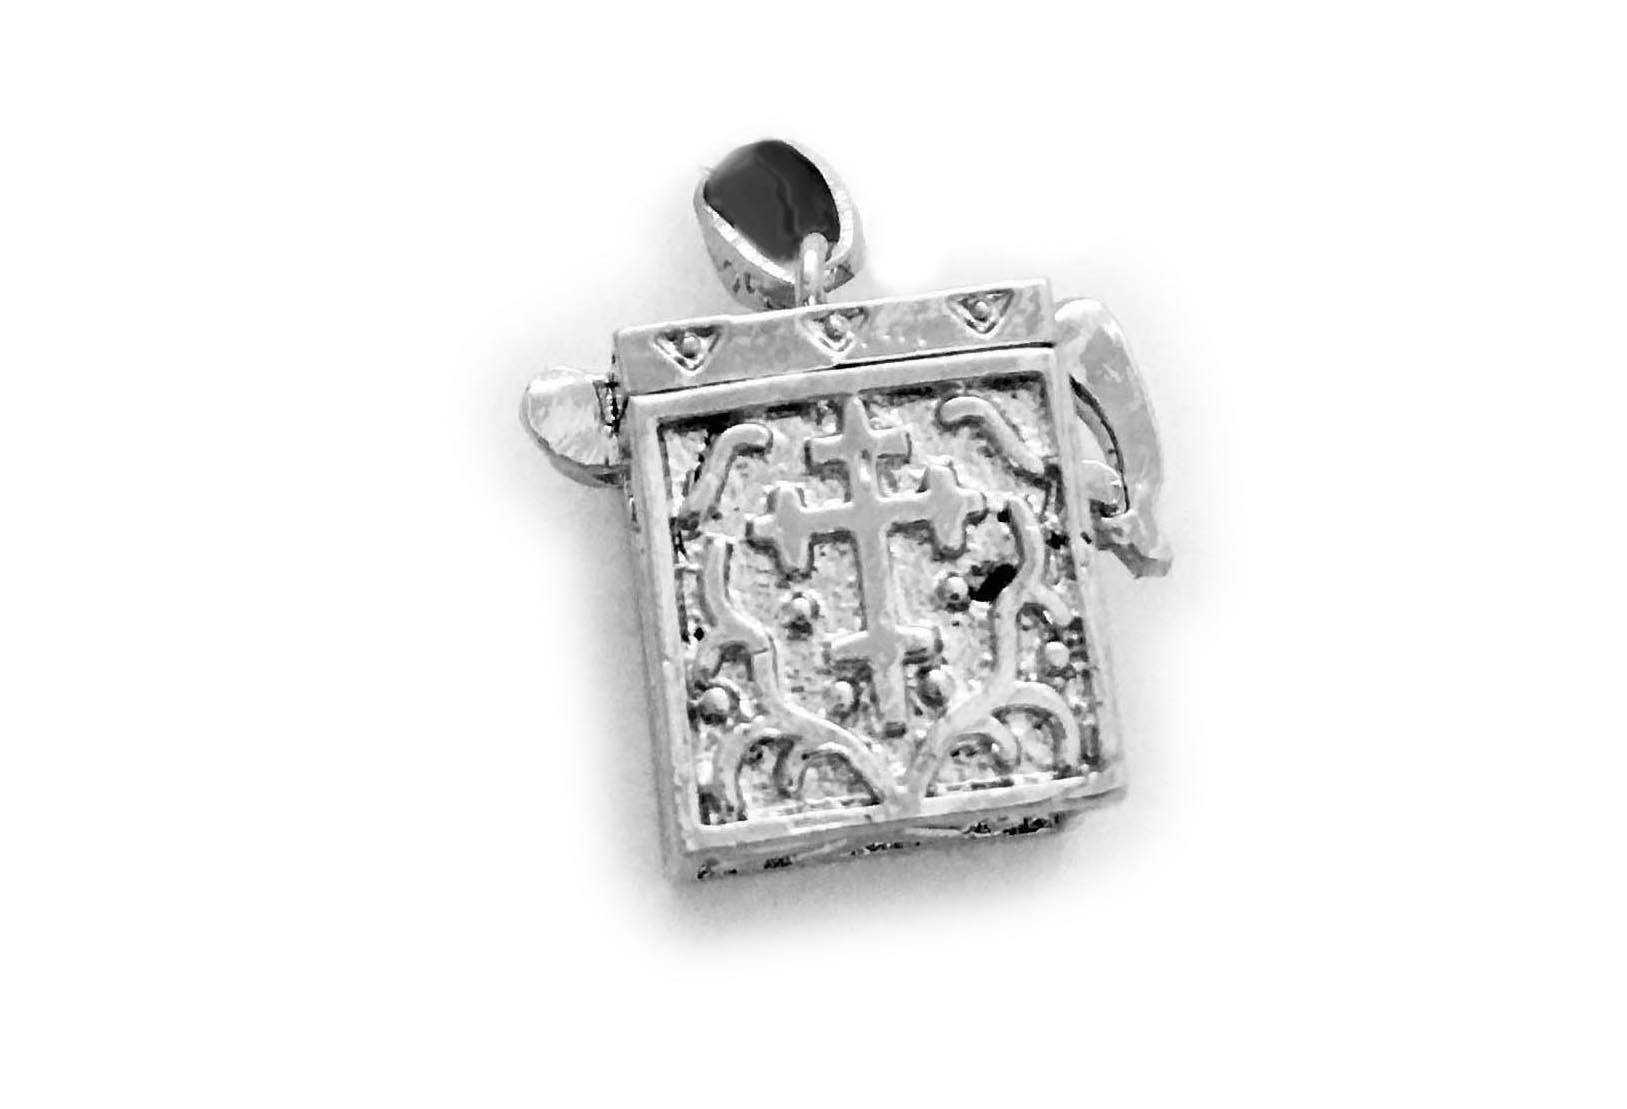 Silver Prayer or Blessing Box Charm. It is hinged so it opens and you can slip or whisper a prayer inside.